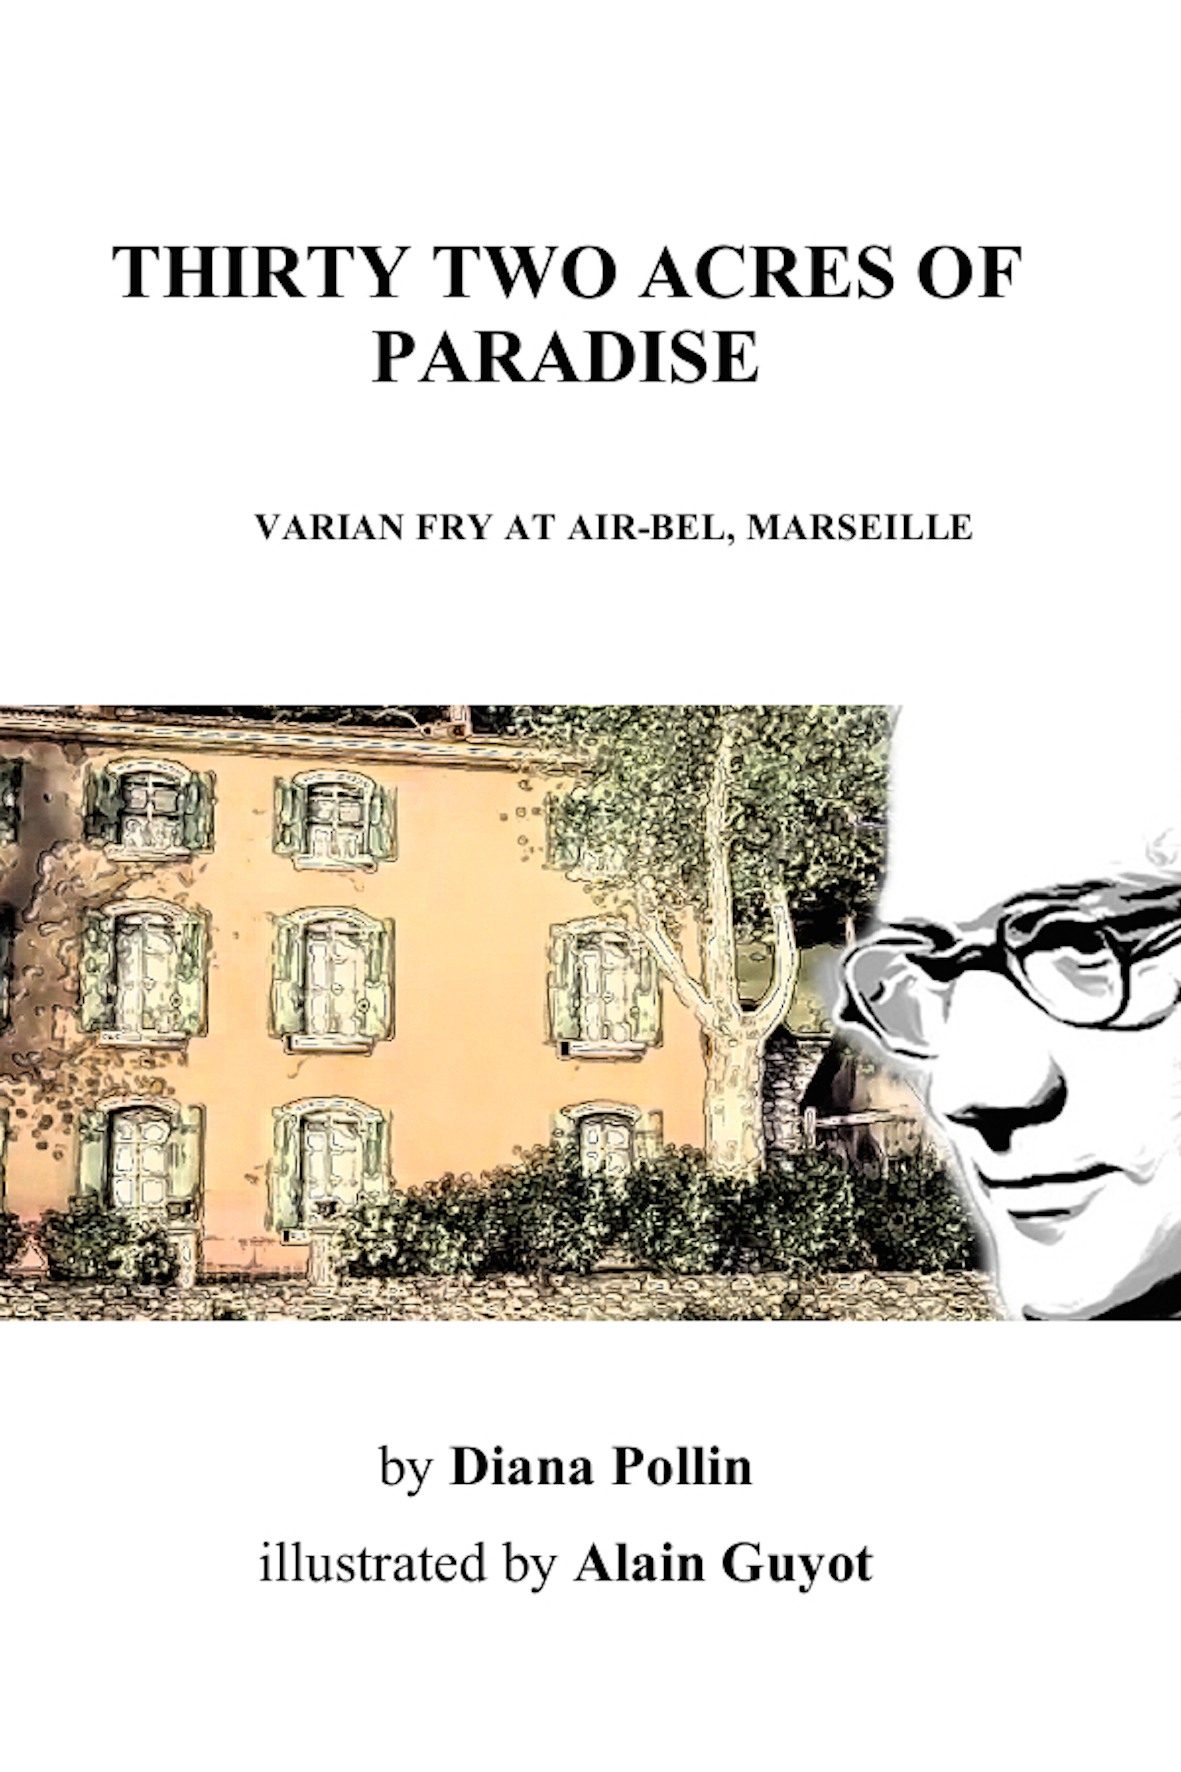 Thirty-Two Acres of Paradise by Diana Pollin and Alain Guyot